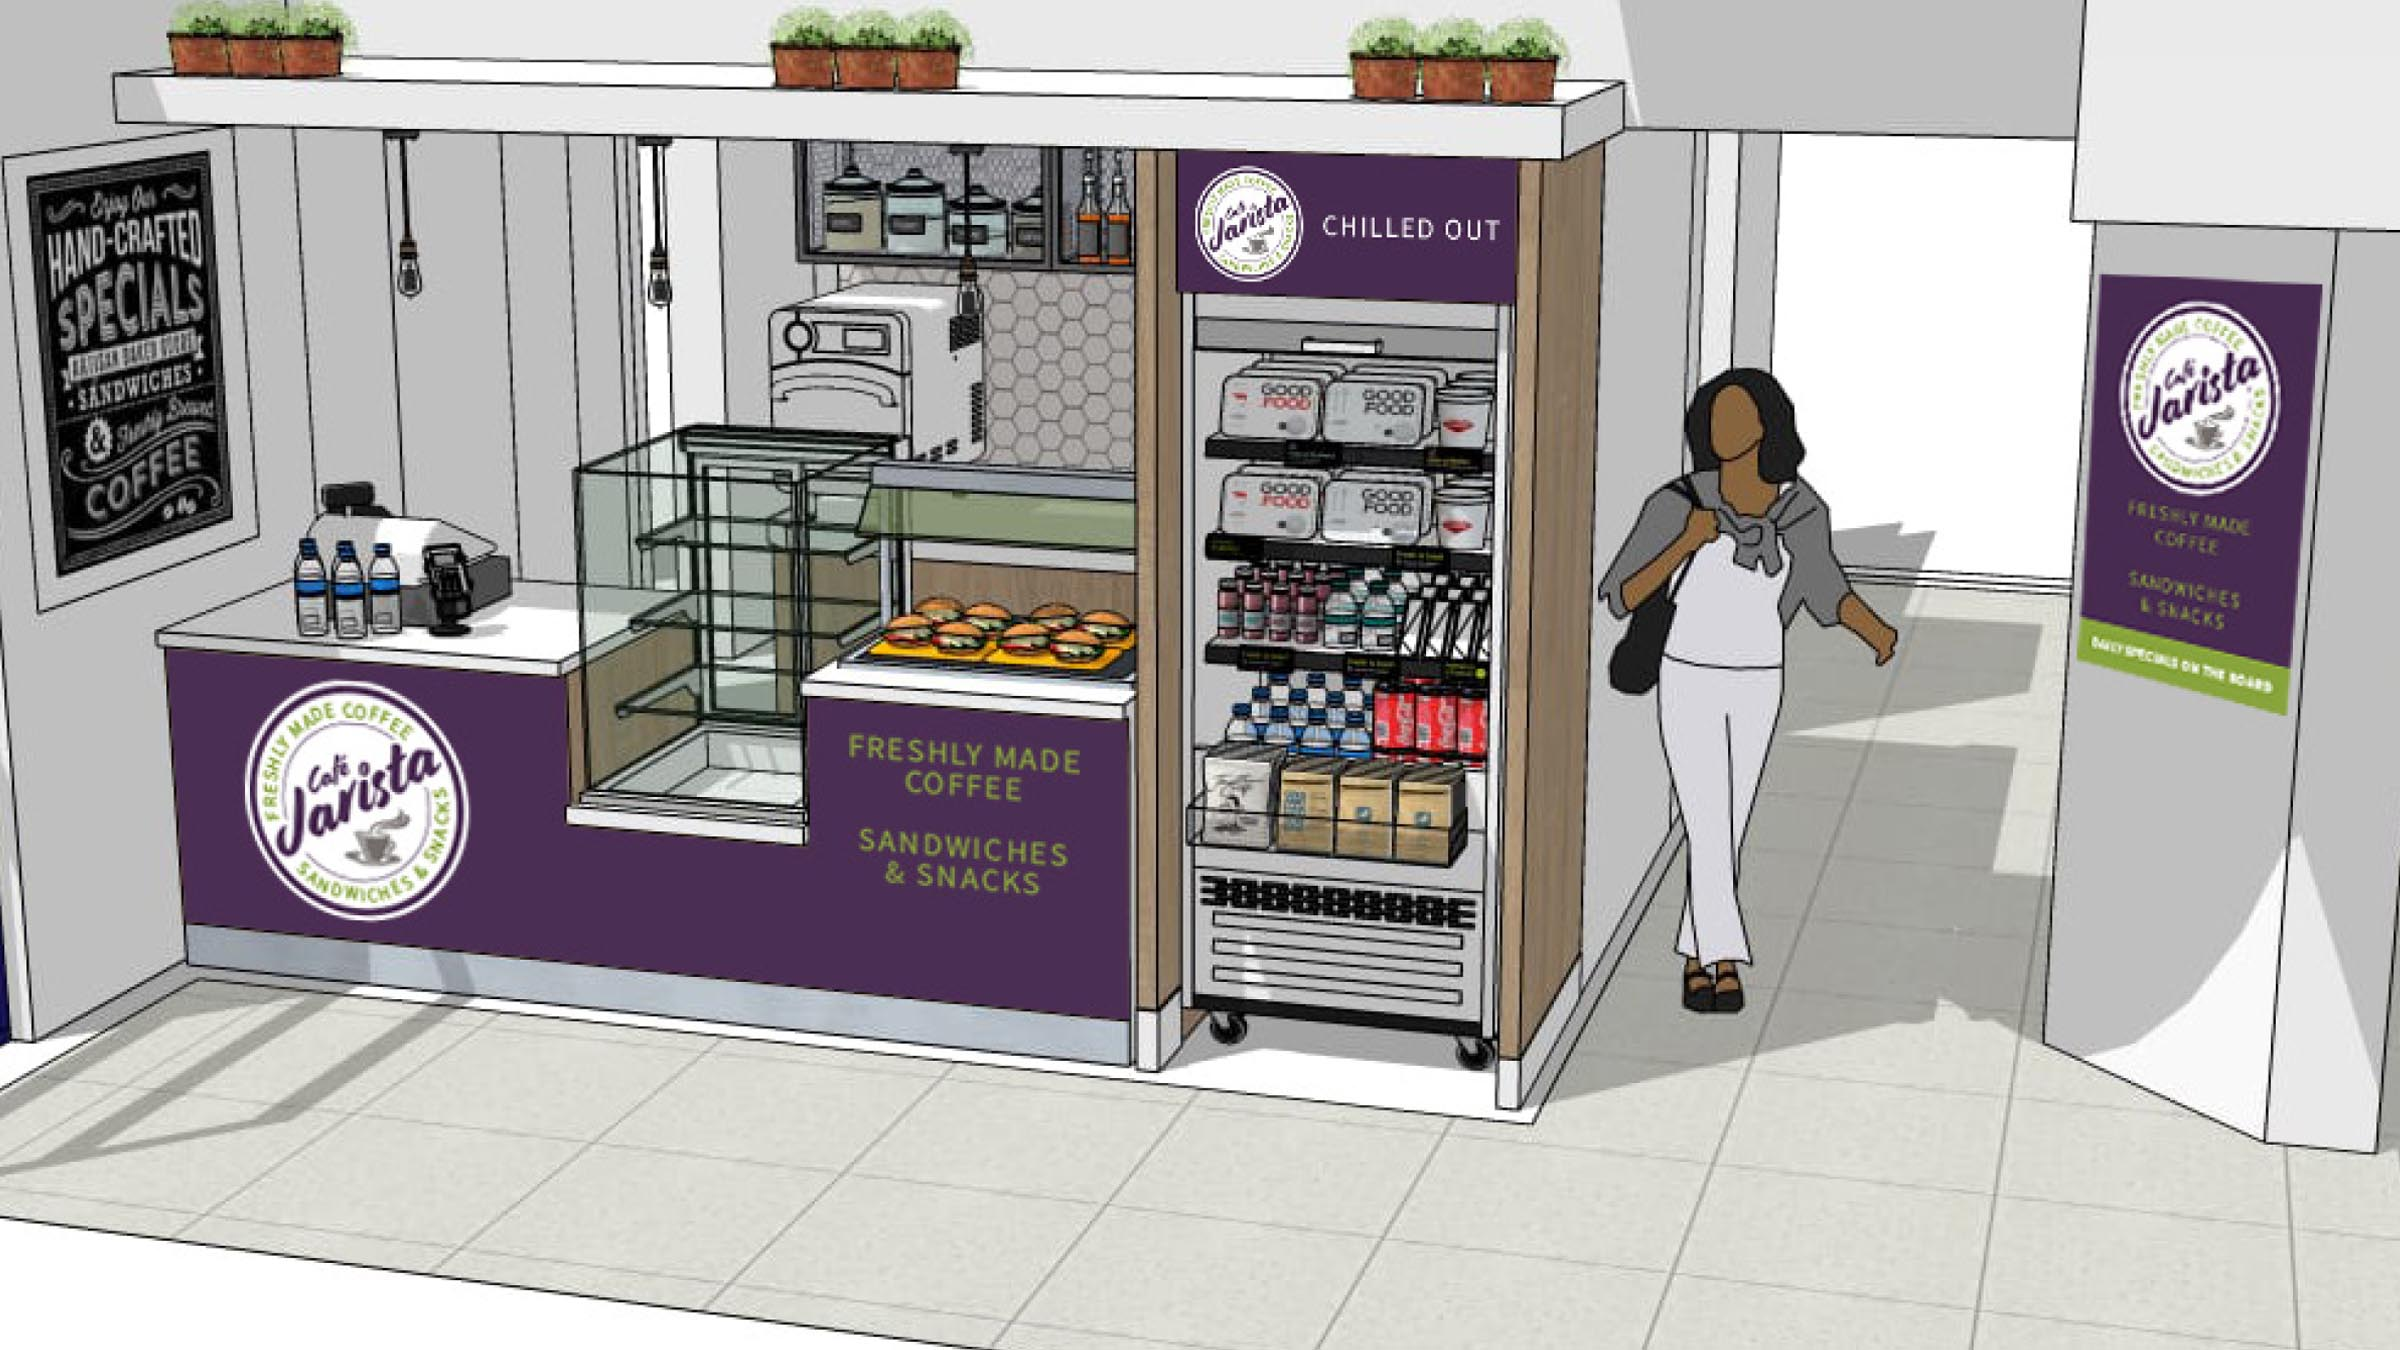 Café Jarista store visualisation illustration